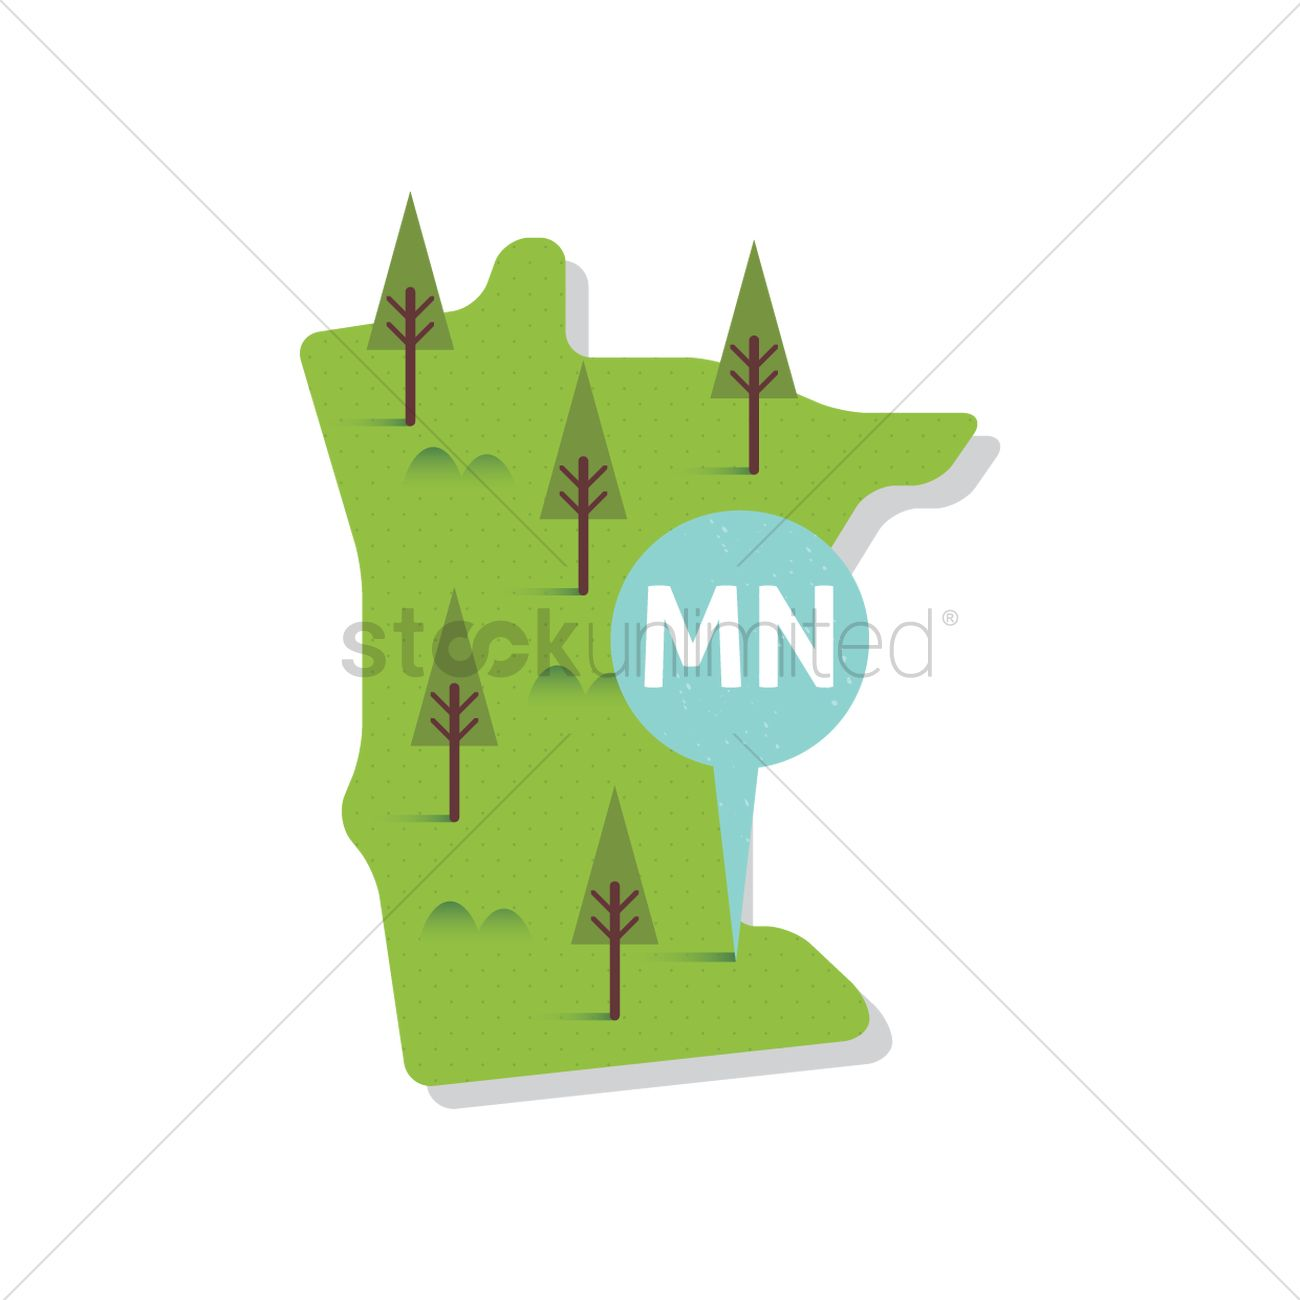 Free Minnesota State Map Vector Image 1556860 Stockunlimited